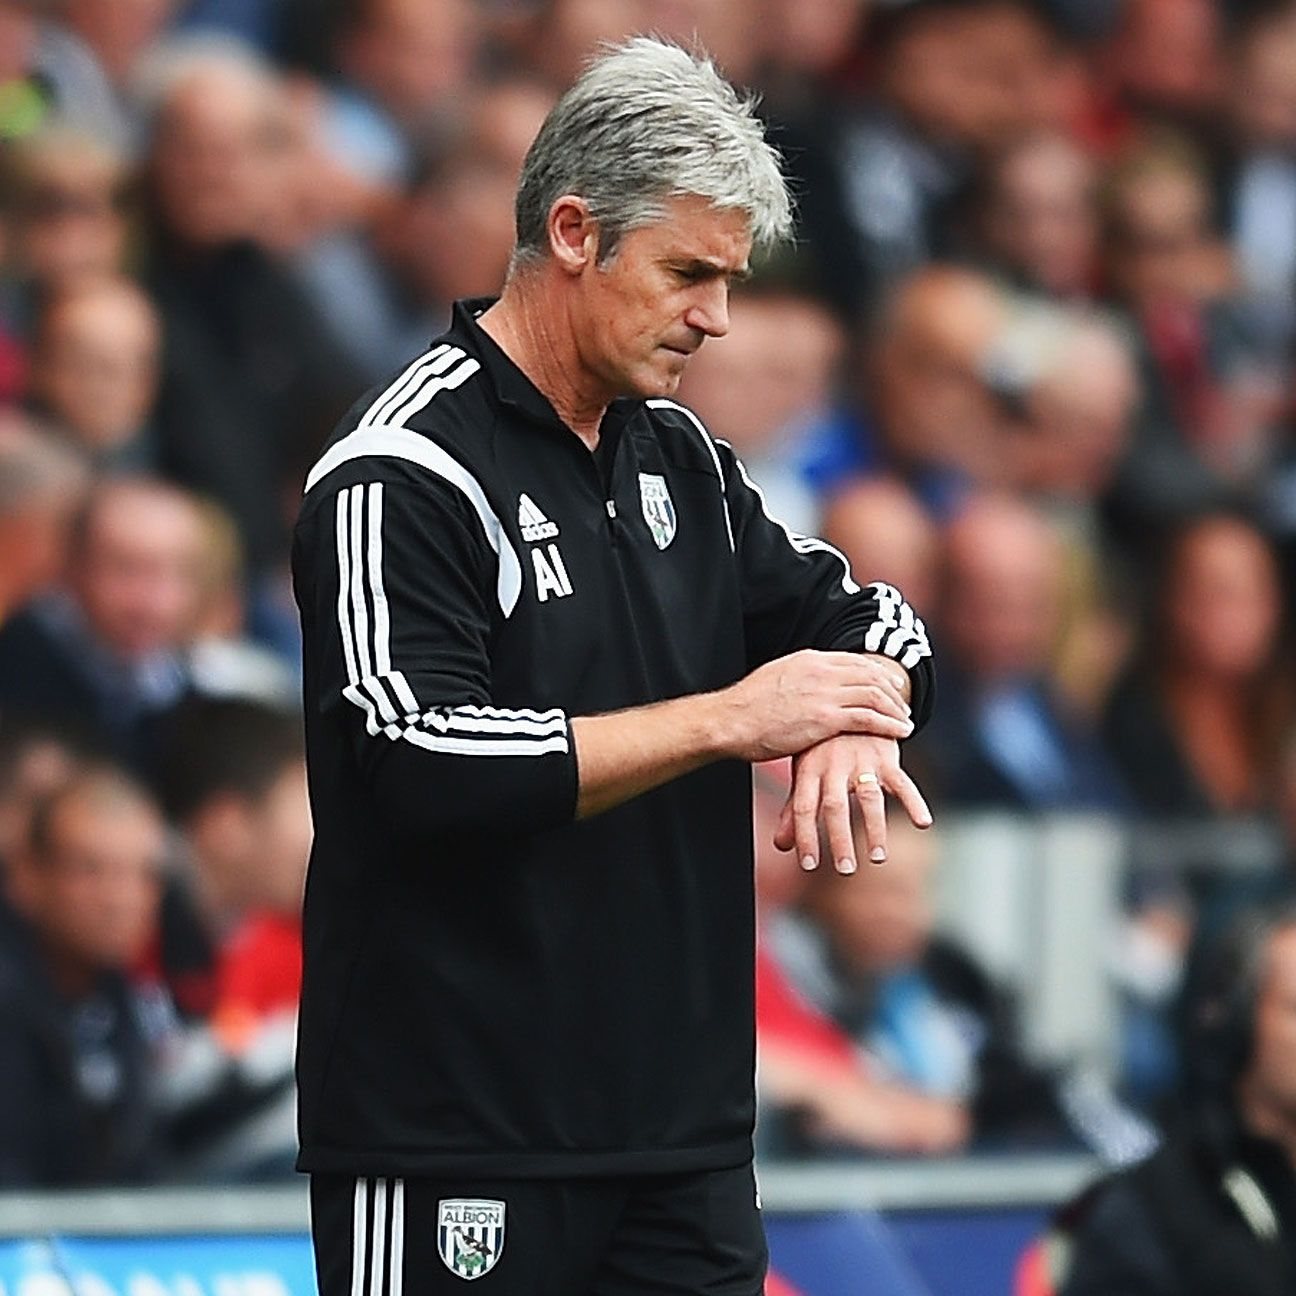 Time has run out on Alan Irvine at West Brom.